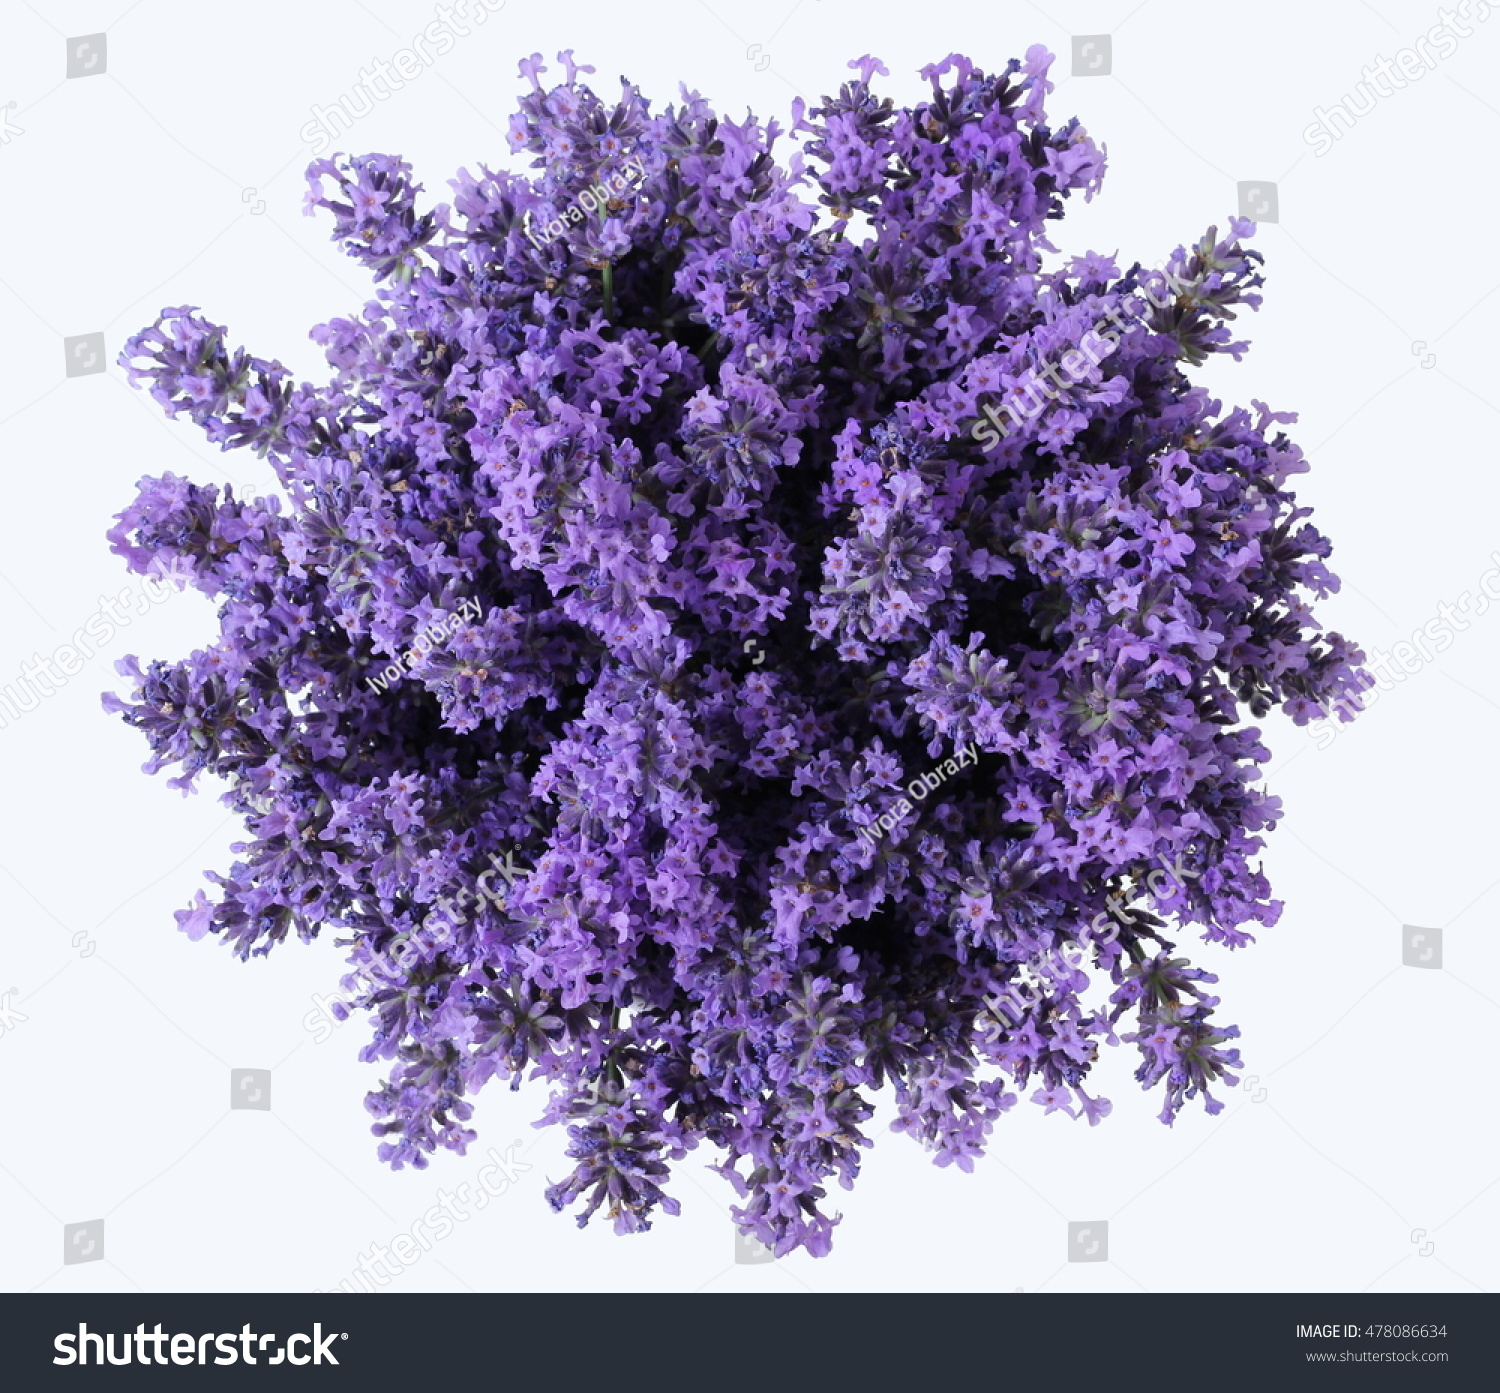 Top View Bouquet Purple Lavender Flowers Stock Photo & Image ...